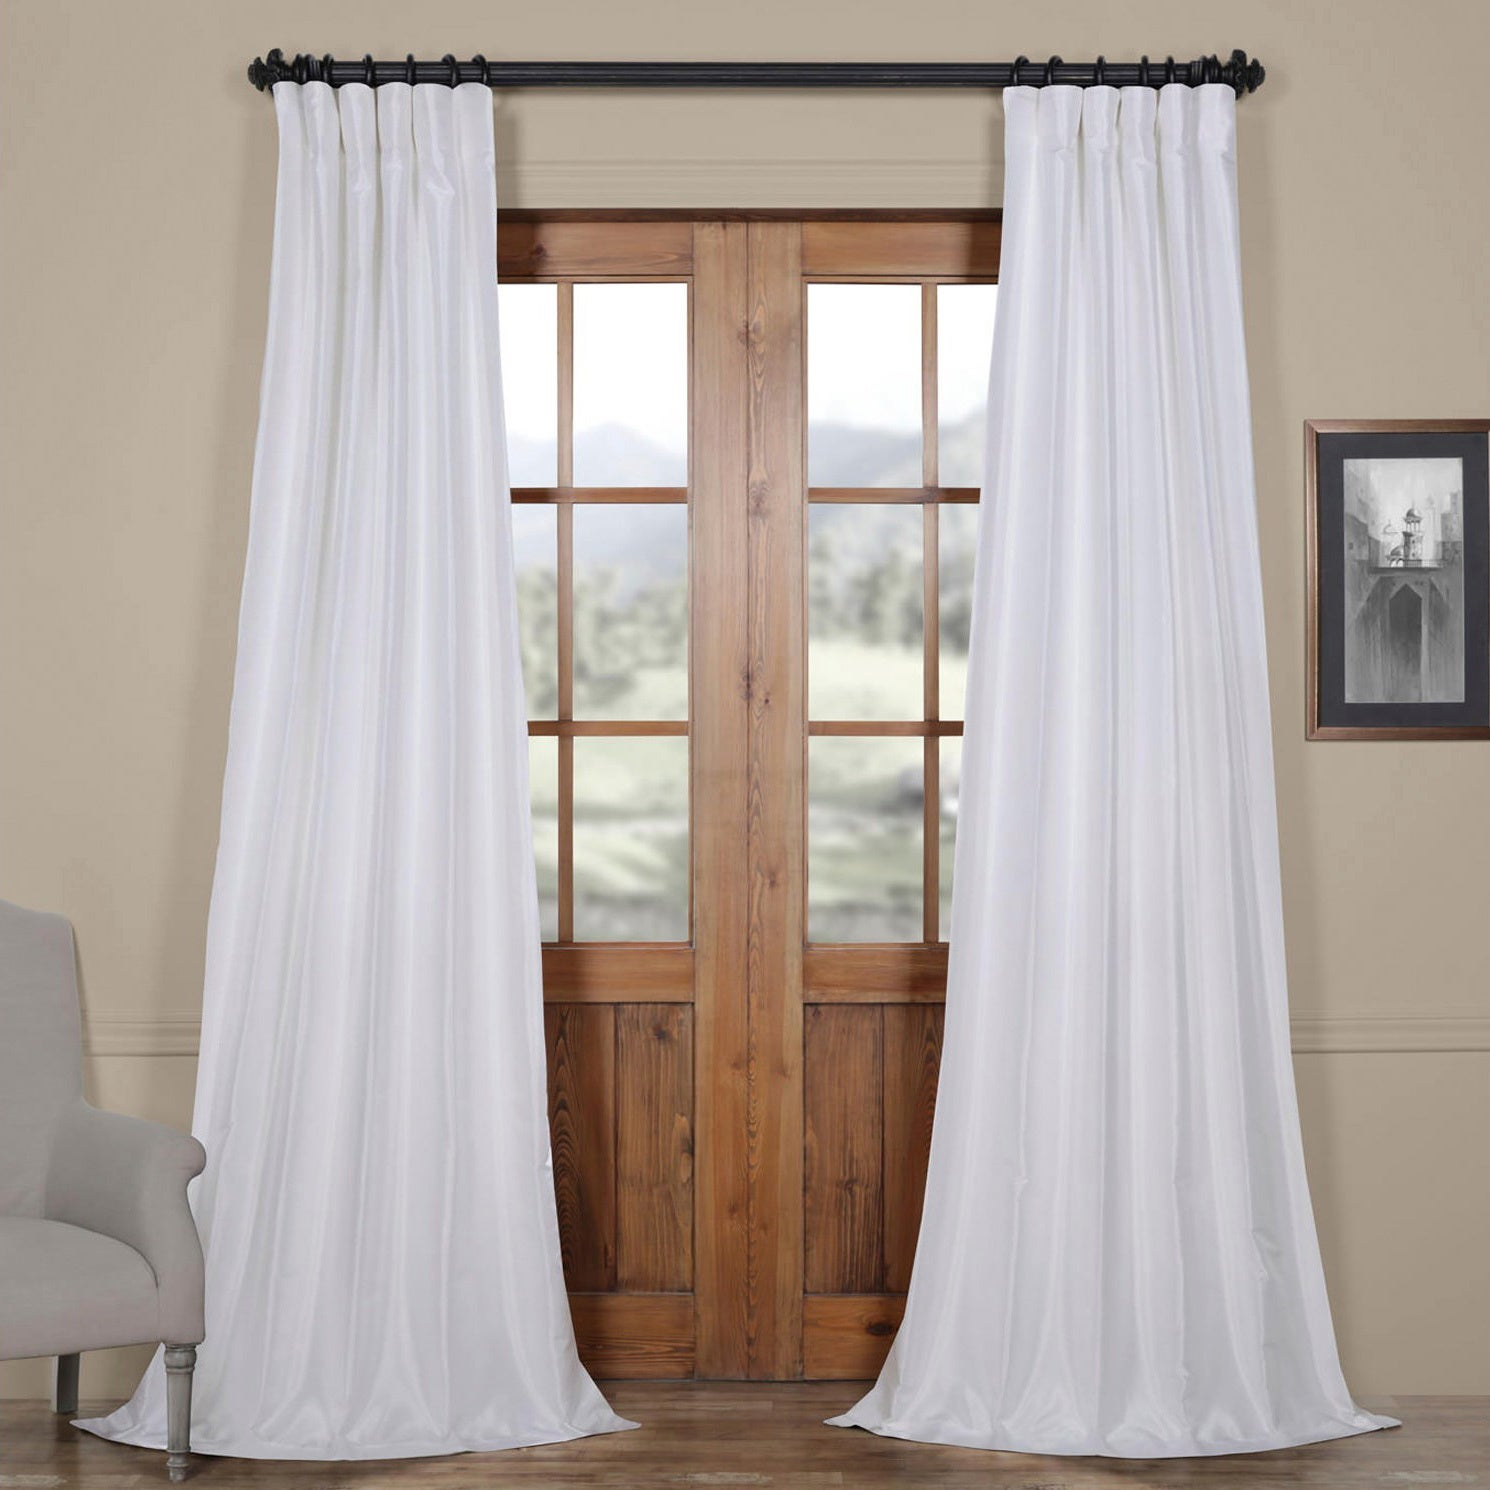 Ice White Vintage Faux Textured Dupioni Silk 108l Curtain Panel For Off White Vintage Faux Textured Silk Curtains (View 11 of 20)